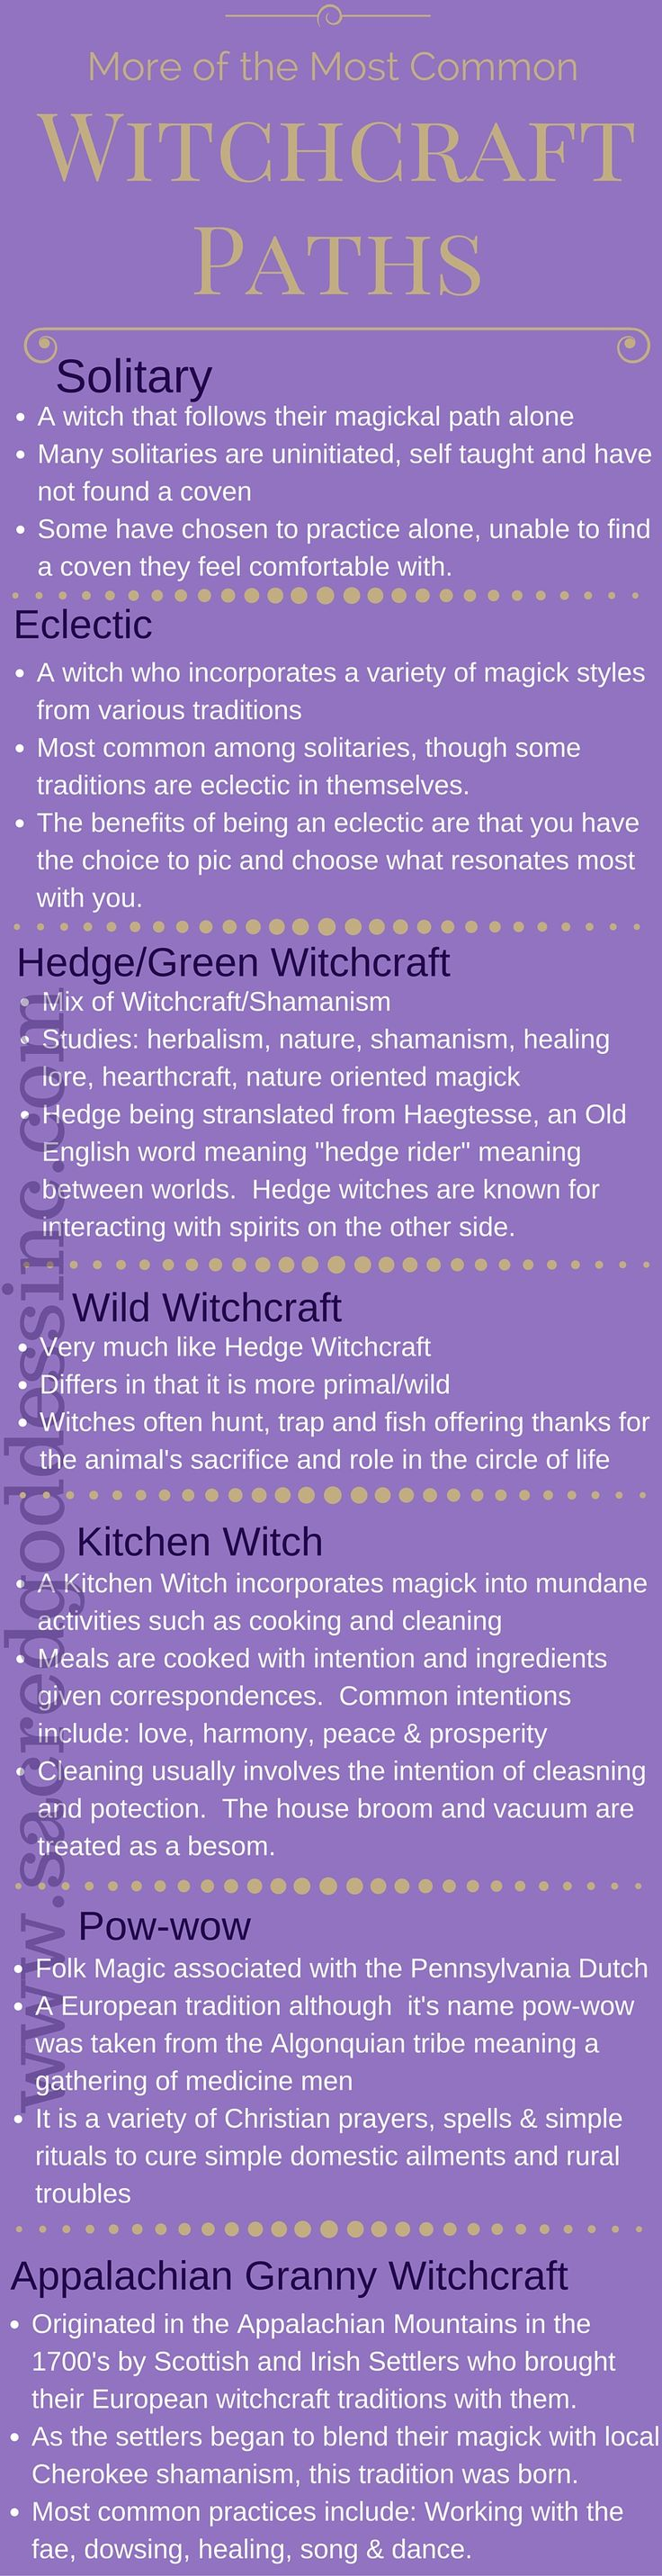 Beginner Wicca - More Witchcraft Traditions: Solitary, Eclectic, Hedge Witch, Wild Witch, Kitchen Witch, Pow-wow & Appalachian Grannie Magick - I guess eclectic since hedge, kitchen and granny resonate most with me